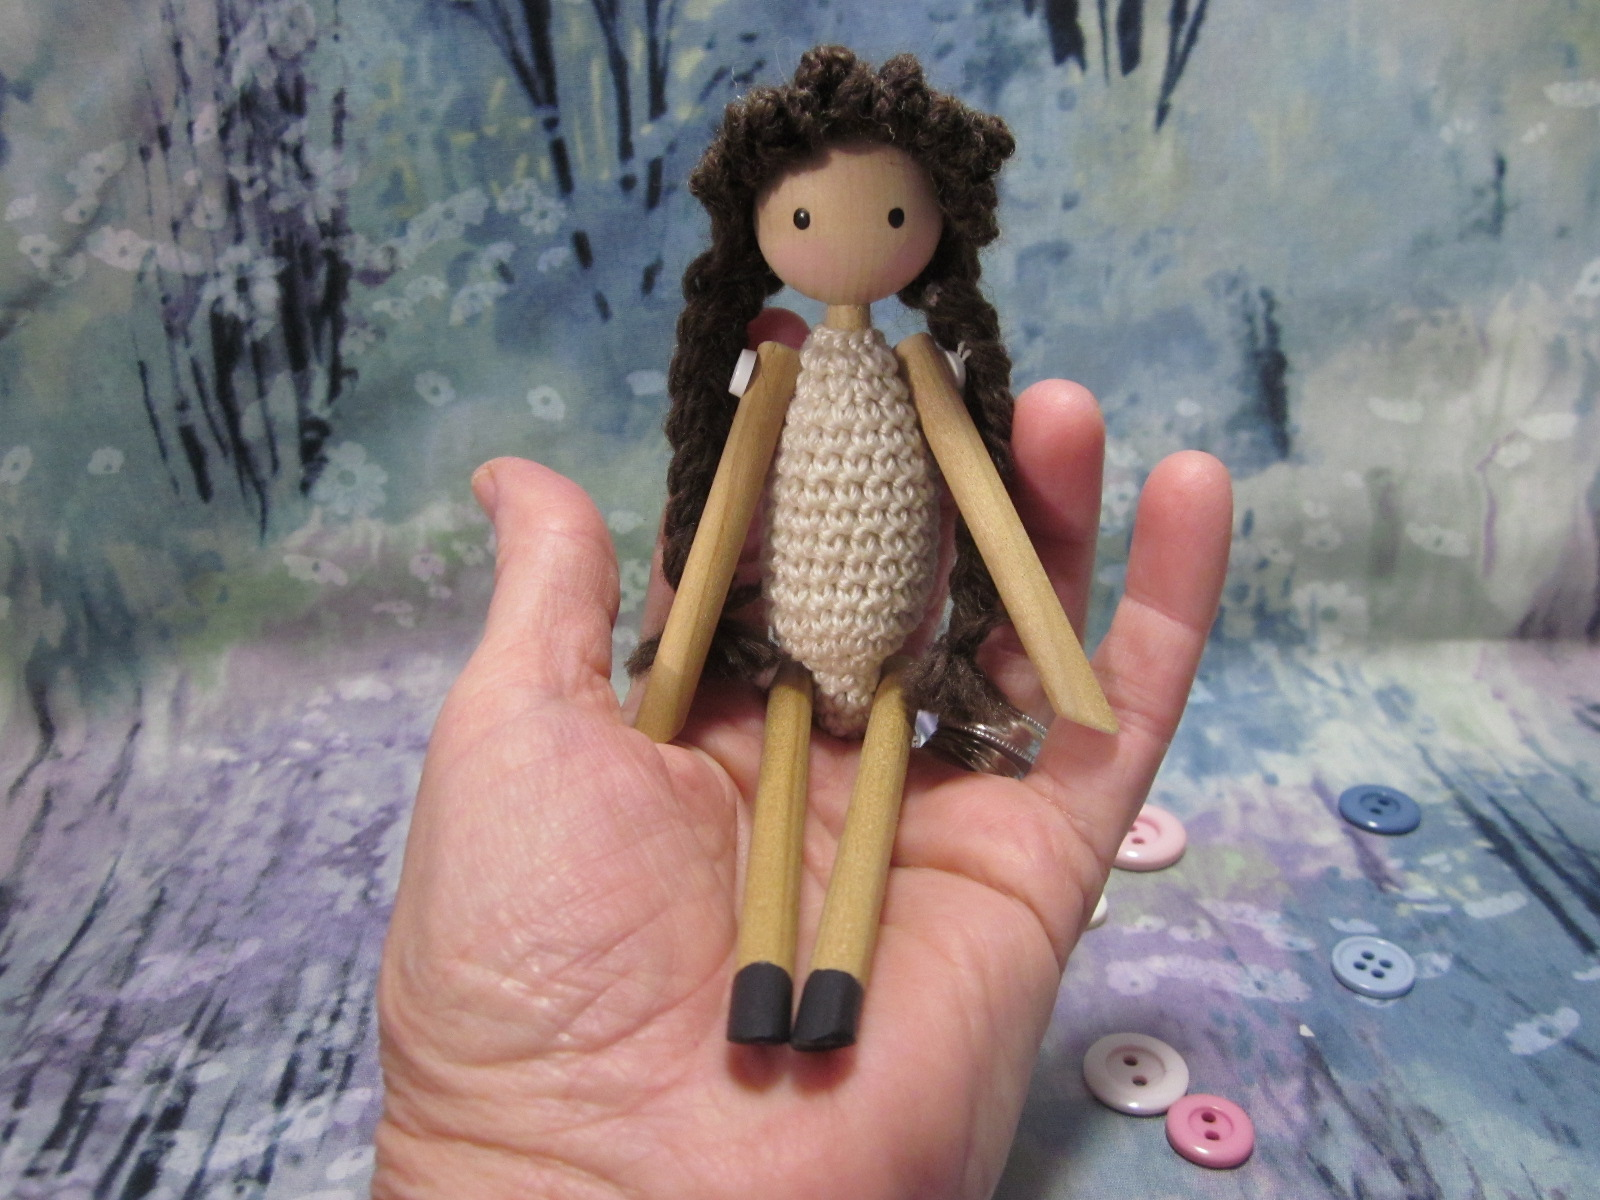 Soft-bodied Peg Dolls